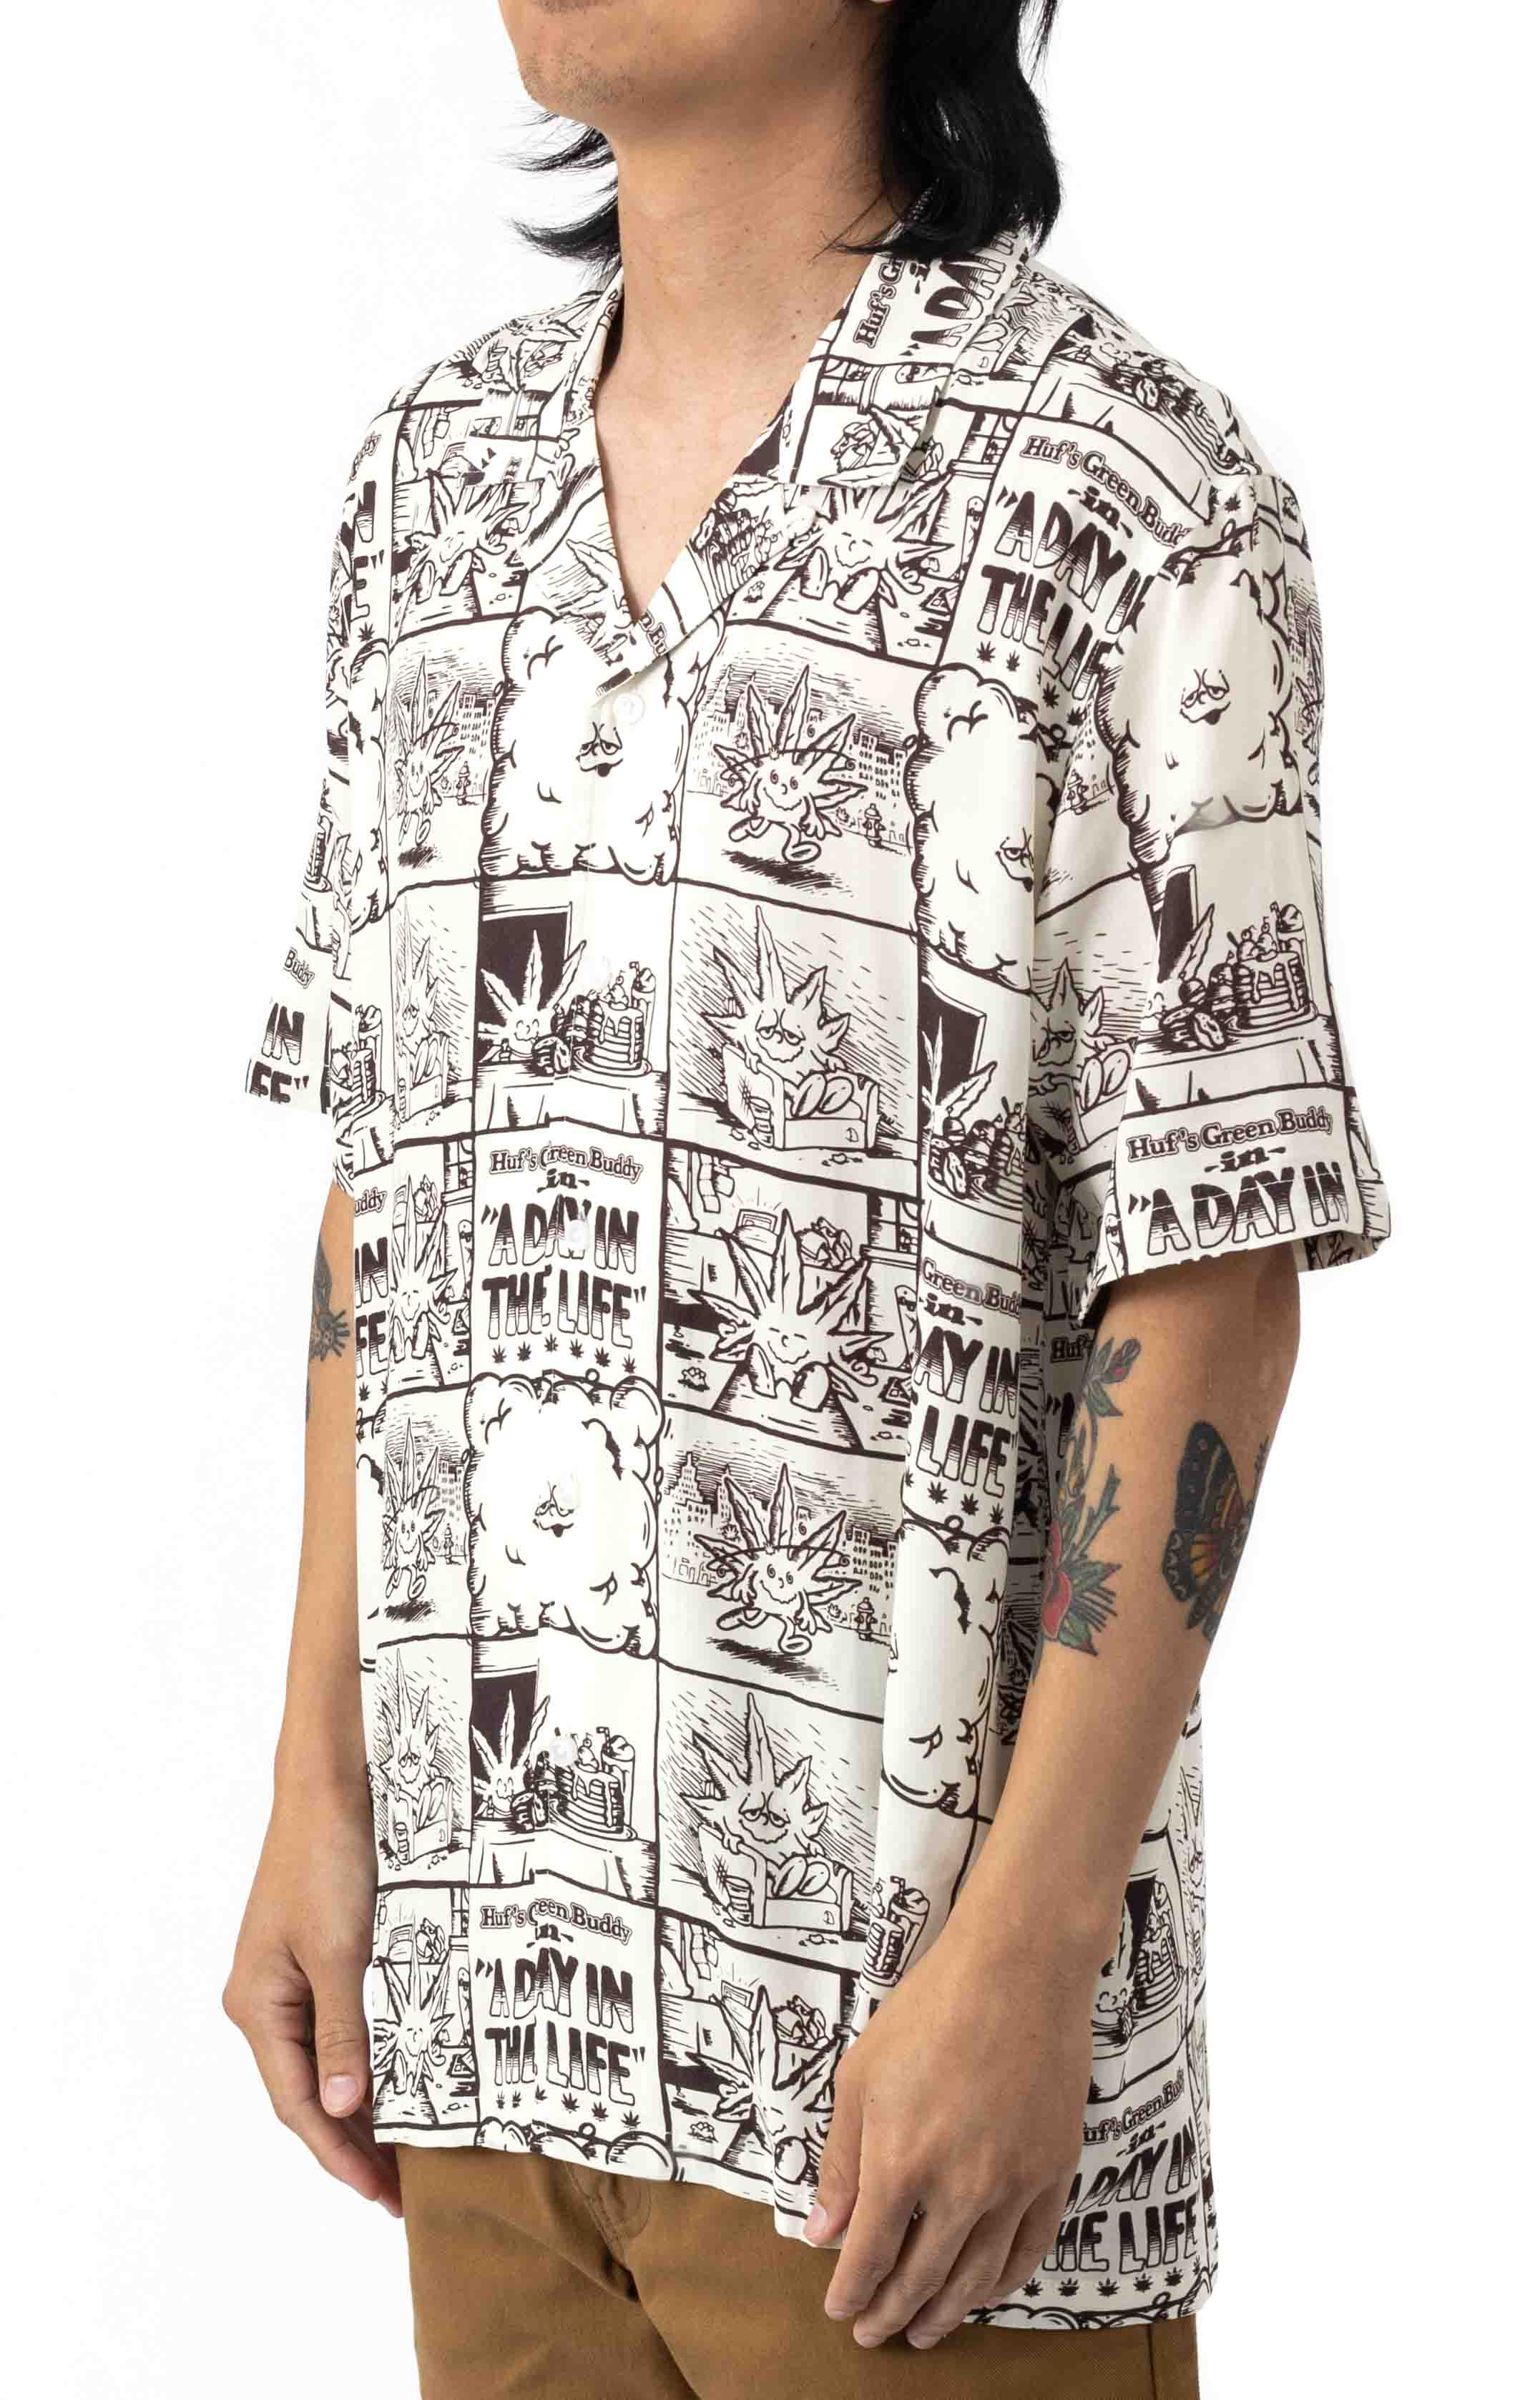 Day In The Life Button-Up Shirt - Natural  2